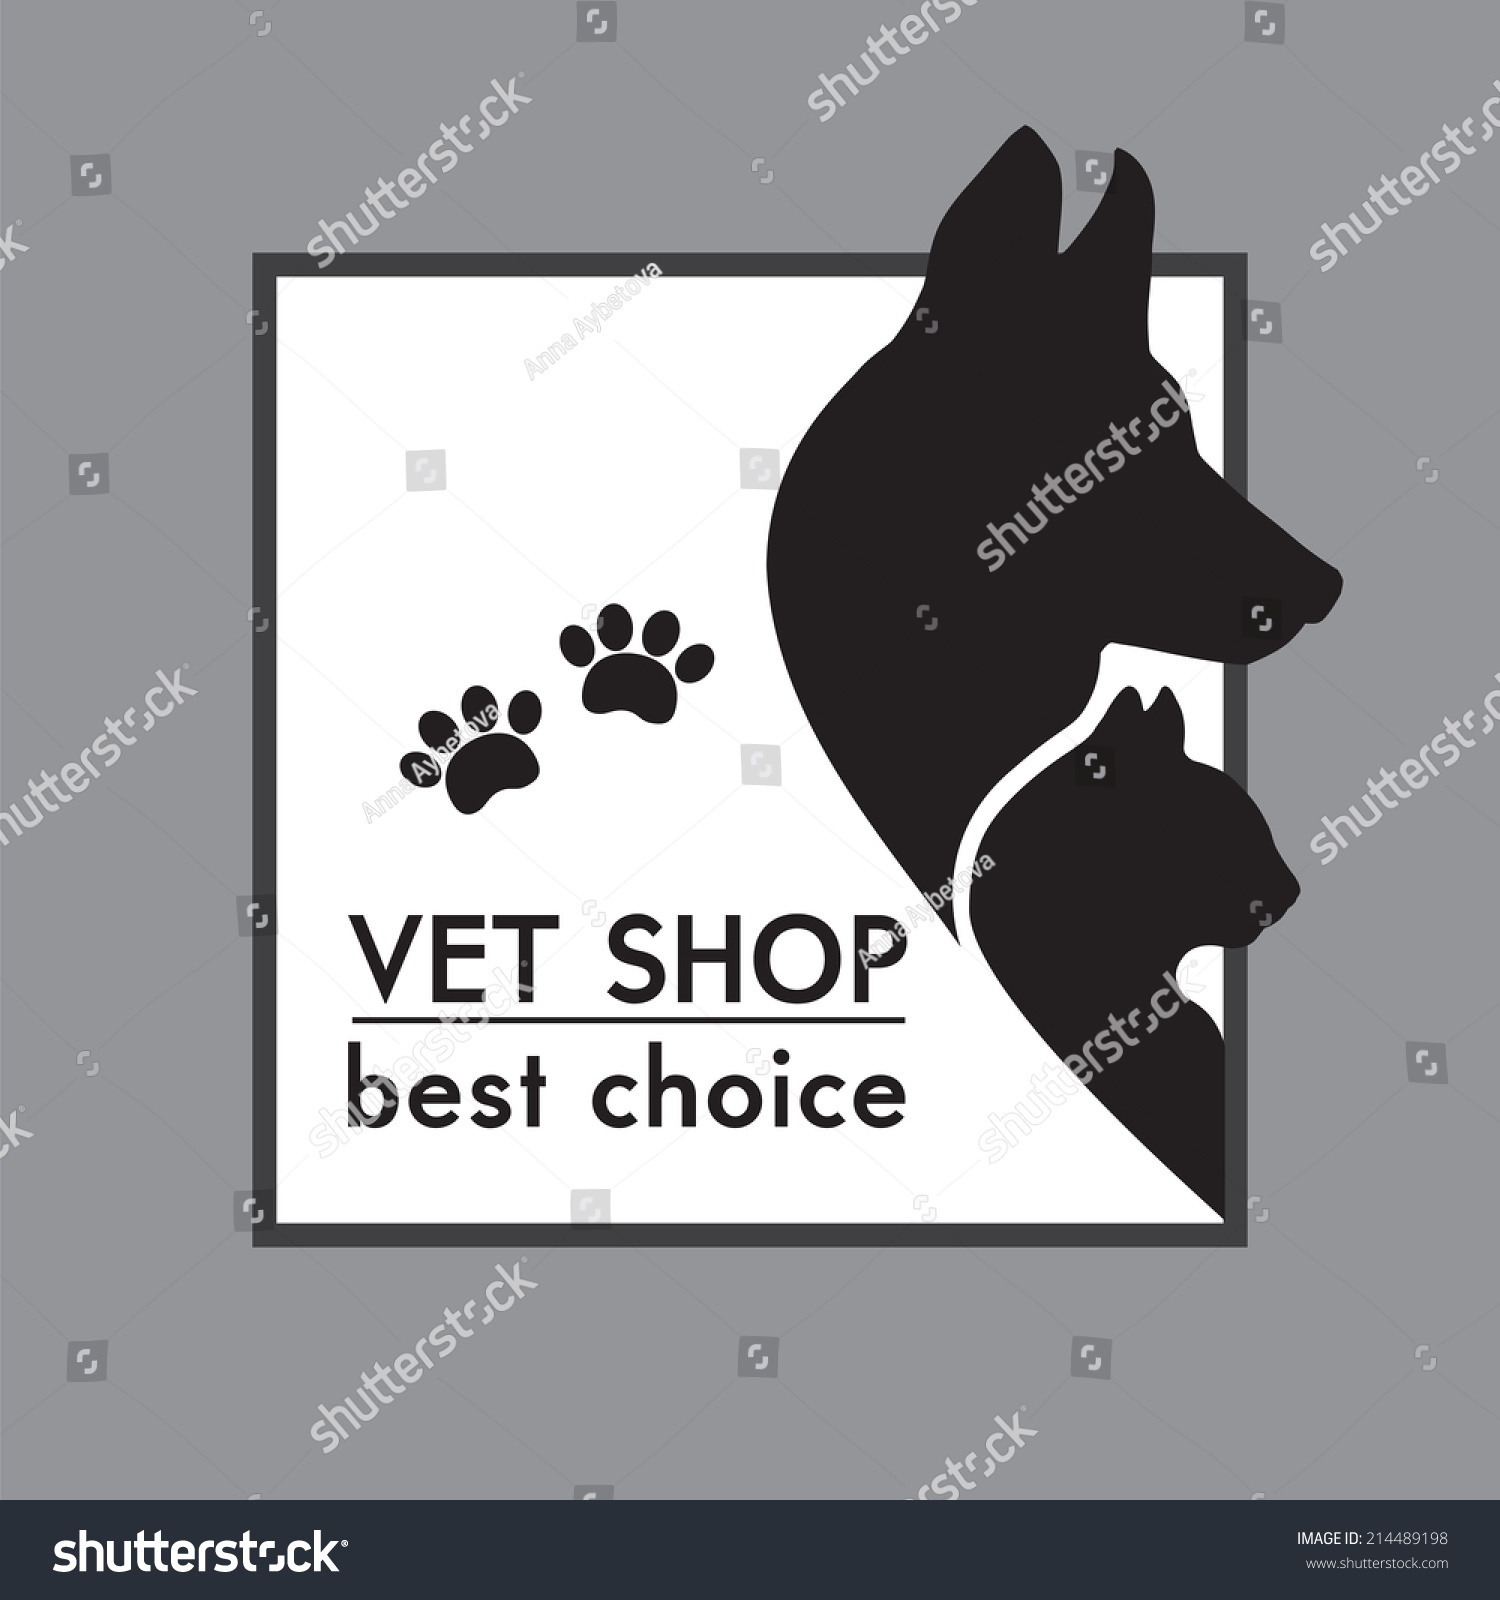 hight resolution of vector silhouettes of a cat and dog on the poster for veterinary shop or clinic